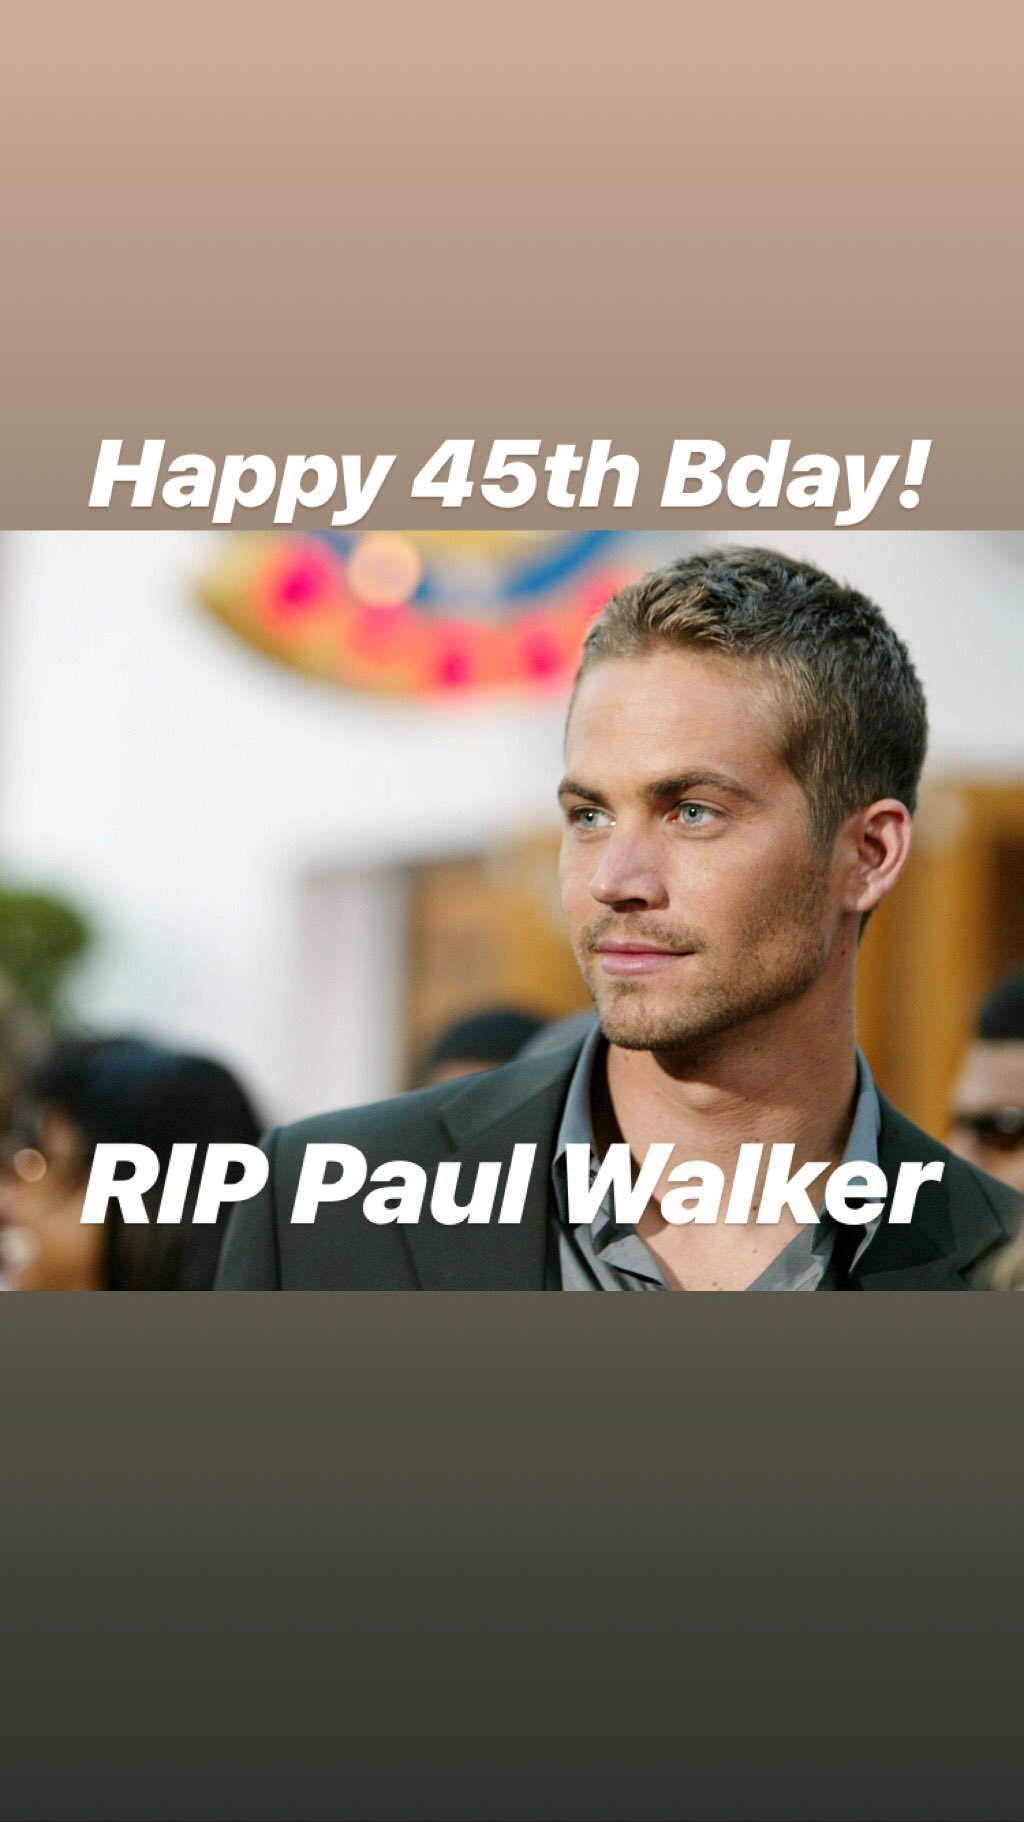 Happy 45th Bday! RIP Paul Walker